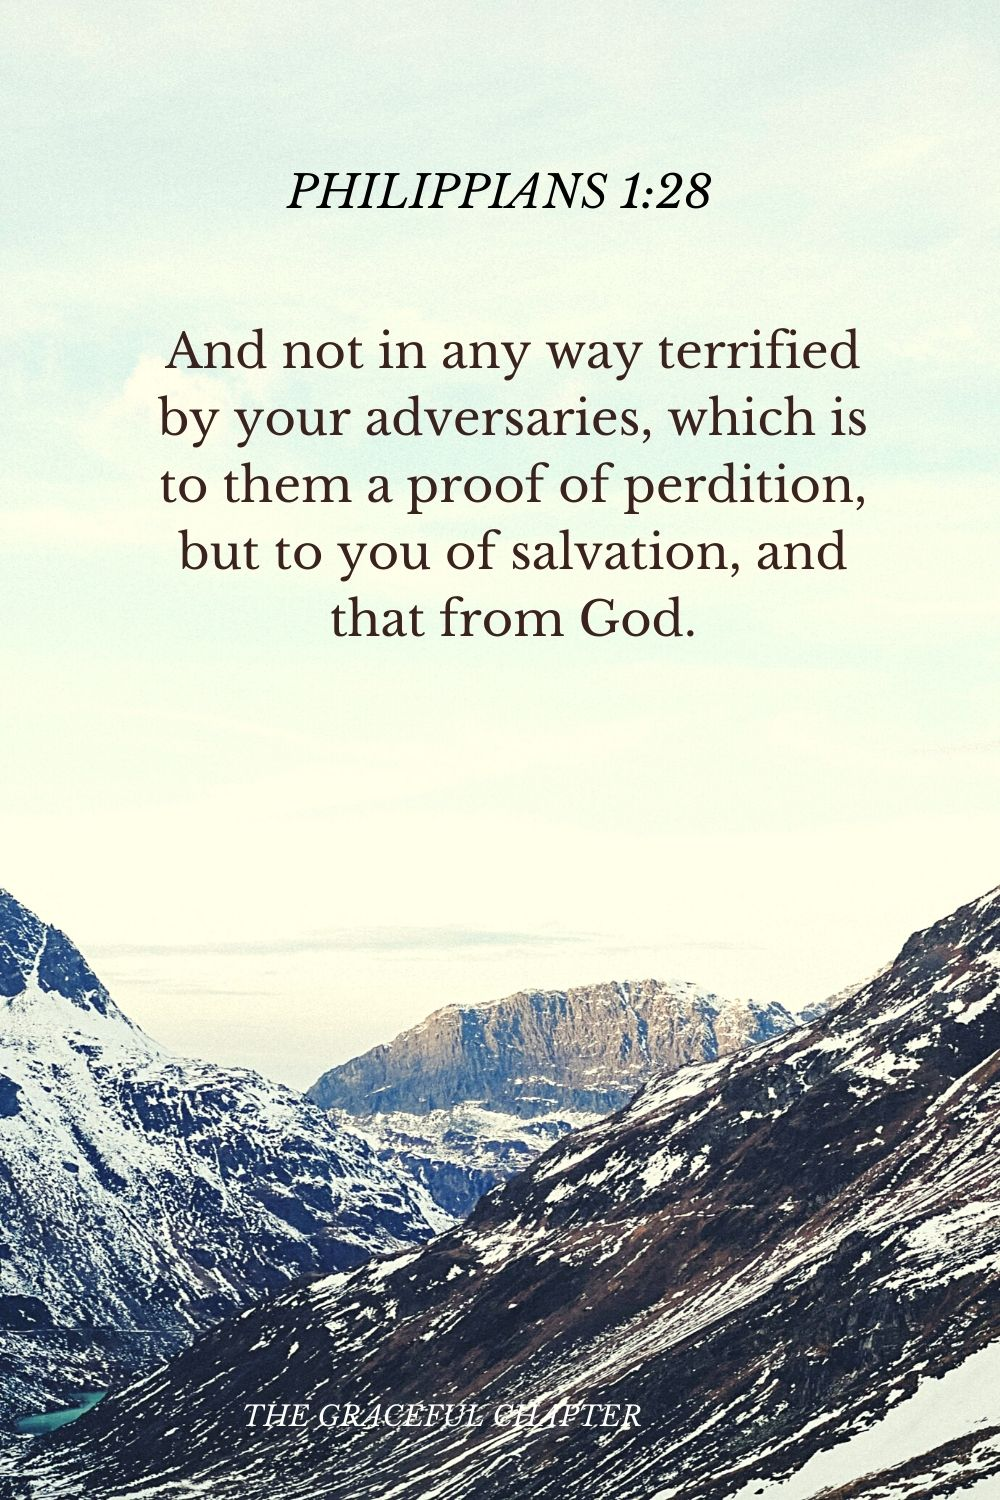 And not in any way terrified by your adversaries, which is to them a proof of perdition, but to you of salvation, and that from God. Philippians 1:28